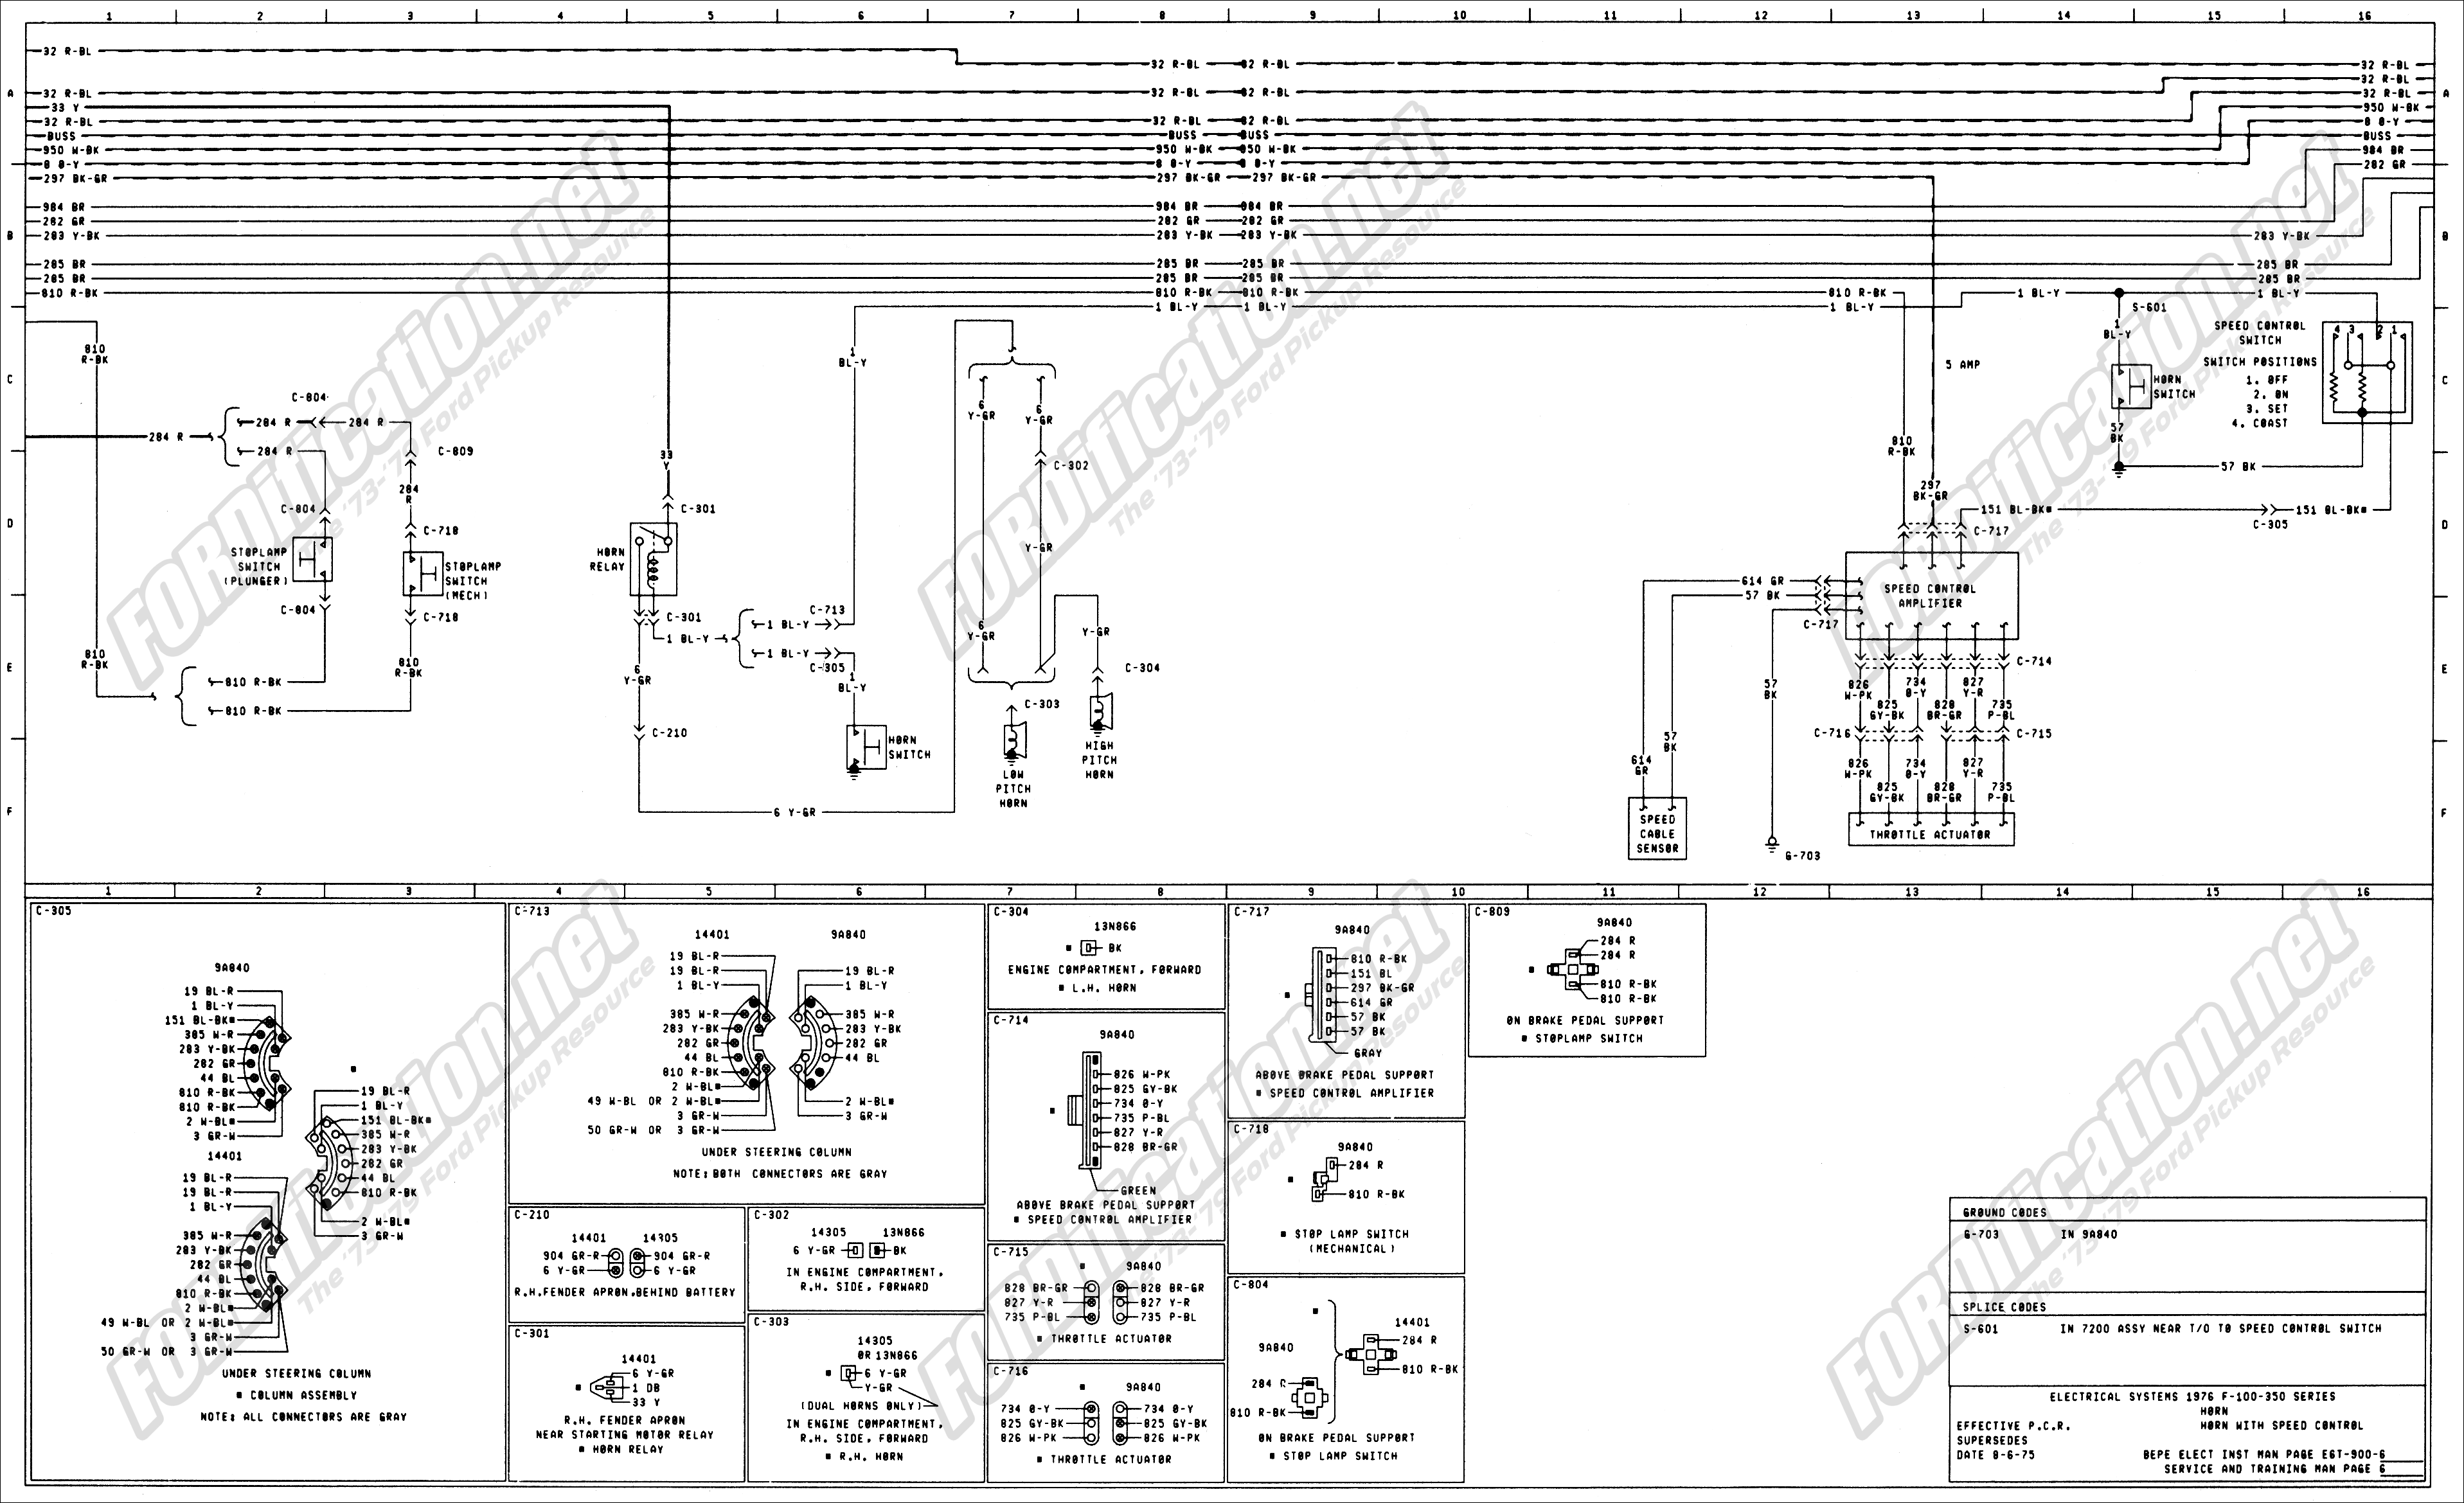 wiring_76master_6of9 1973 1979 ford truck wiring diagrams & schematics fordification net  at nearapp.co